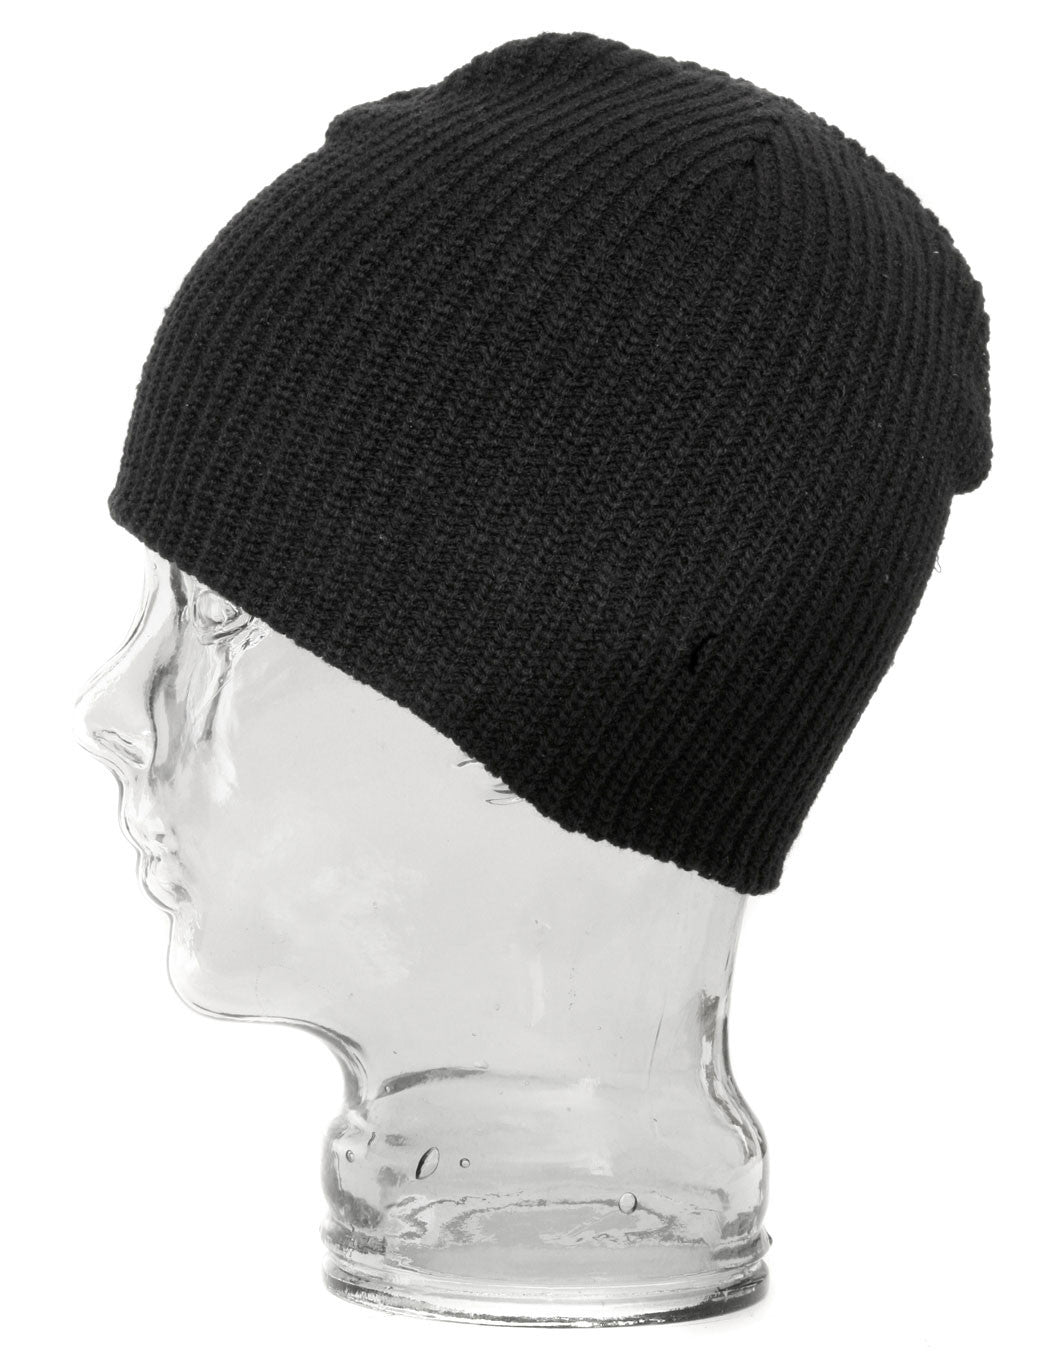 UE Shorty Skull Ribbed Beanie Hat - Black